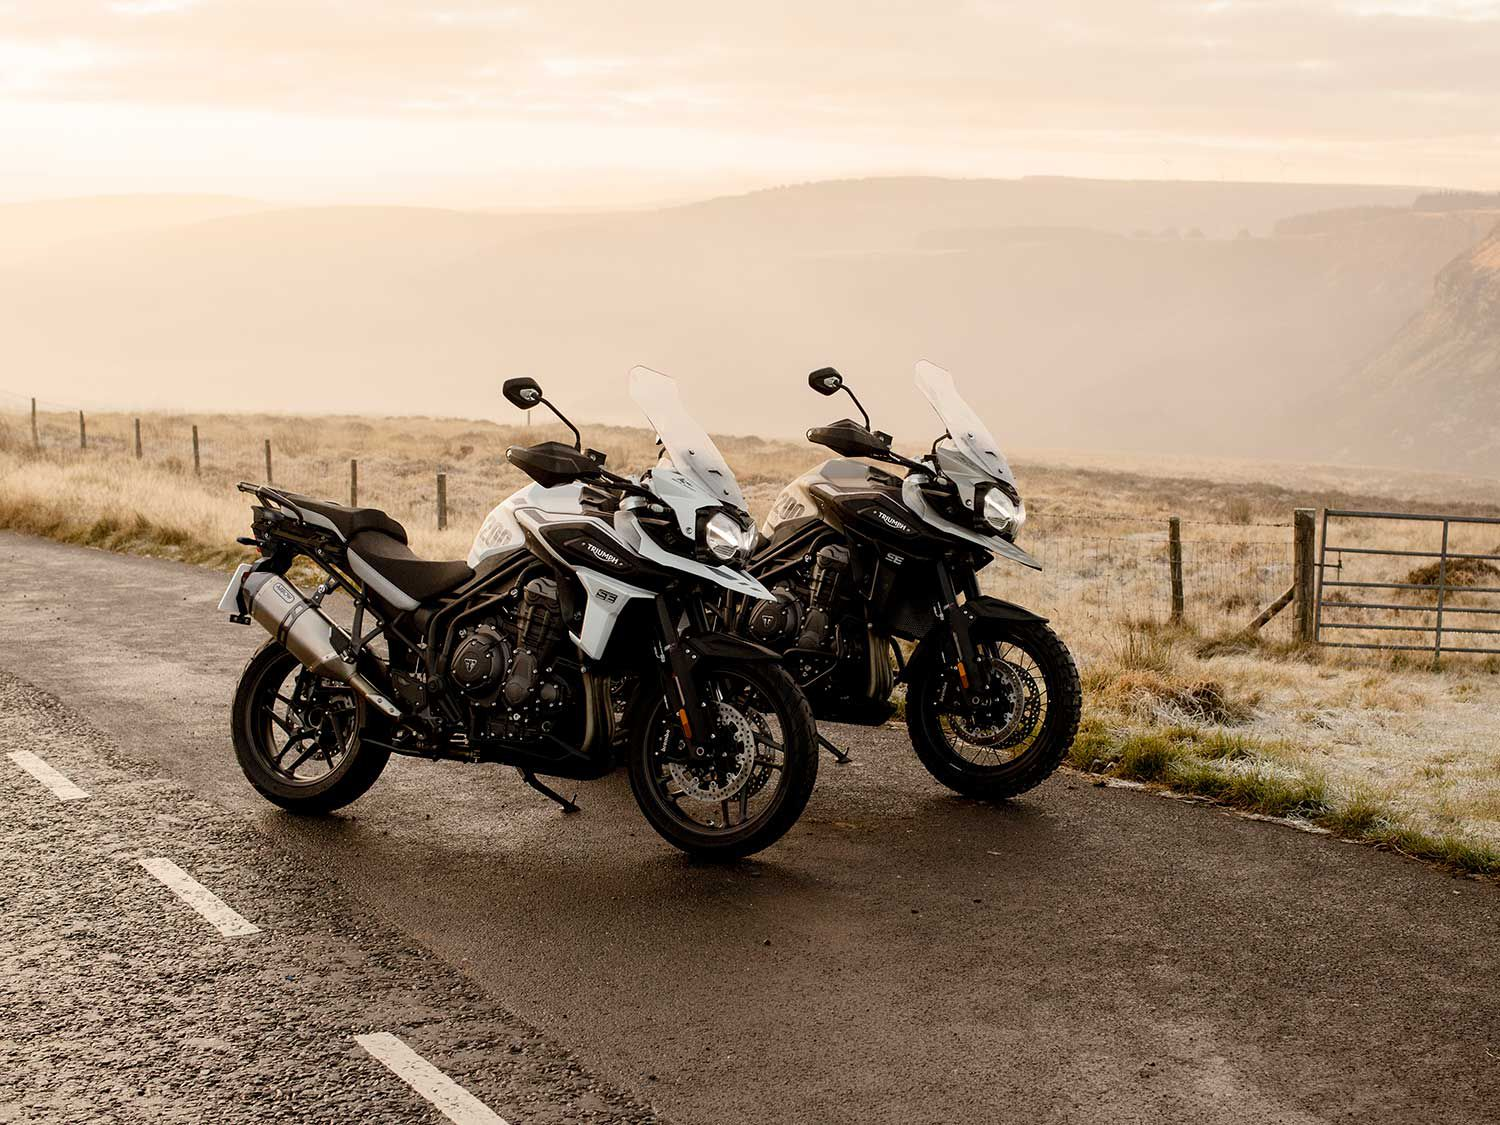 Both of these special-edition Tiger models feature keyless ignition, cruise control, electrically adjustable windscreen, heated grips, and multiple power sockets.